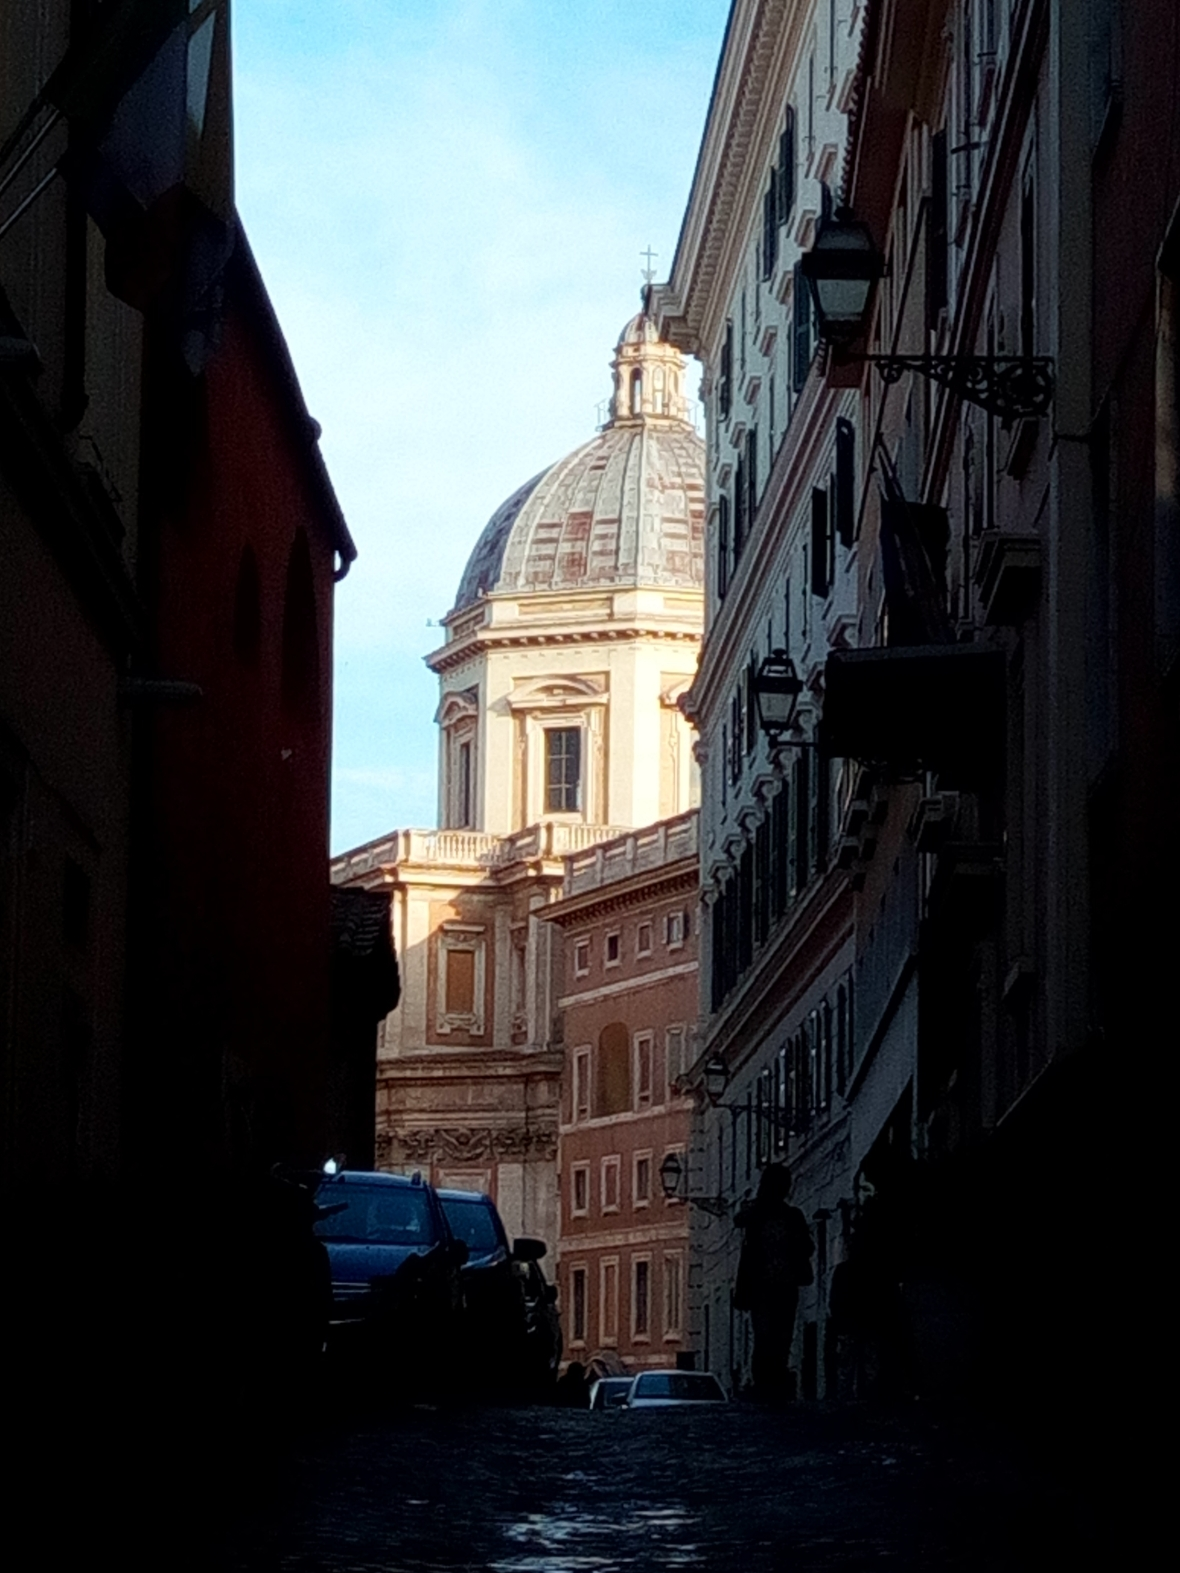 Partial View on Santa Maria Maggiore